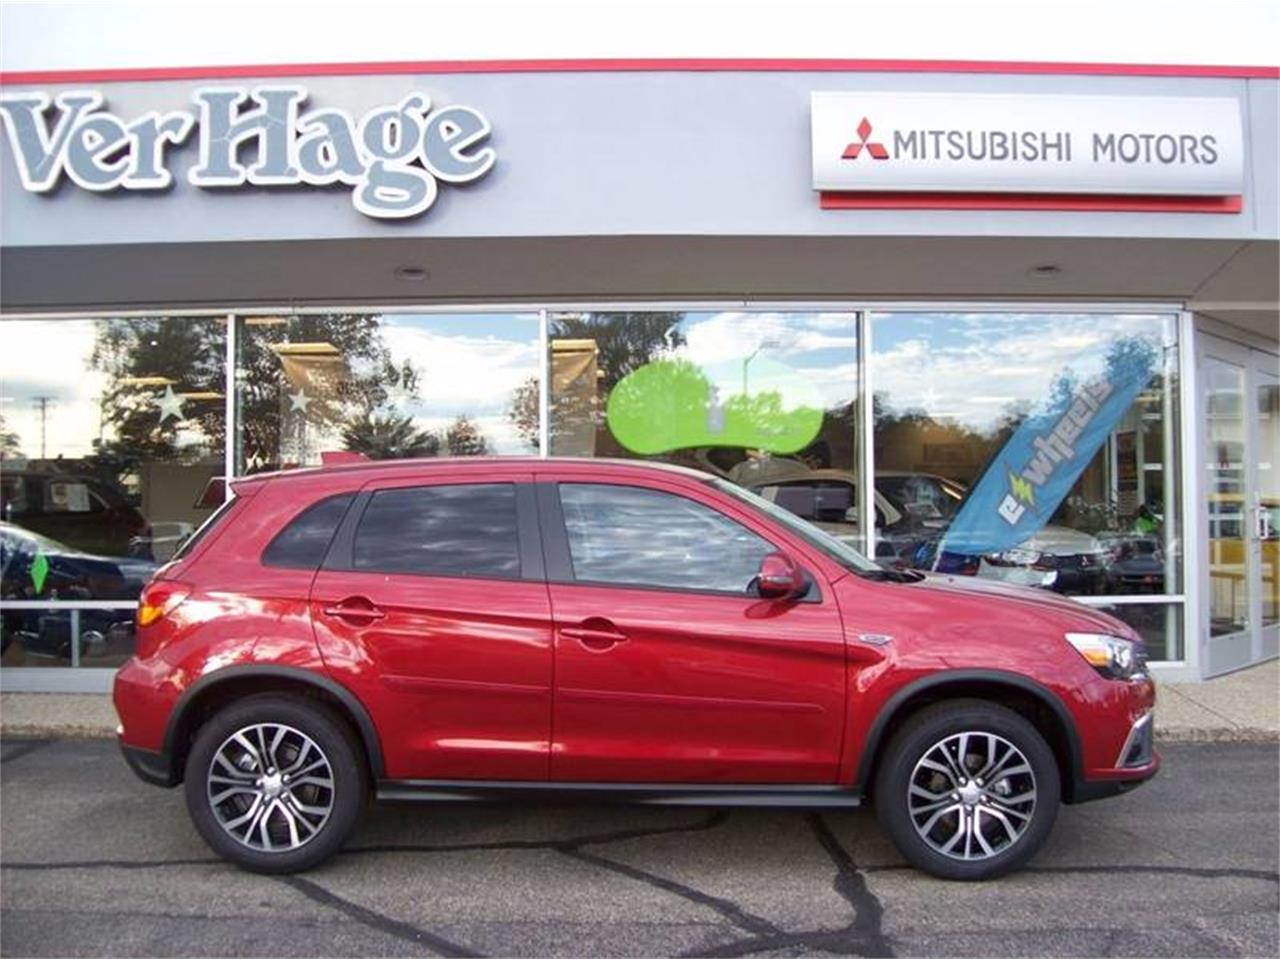 Large Picture of '18 Mitsubishi Outlander - $17,499.00 - M5CZ